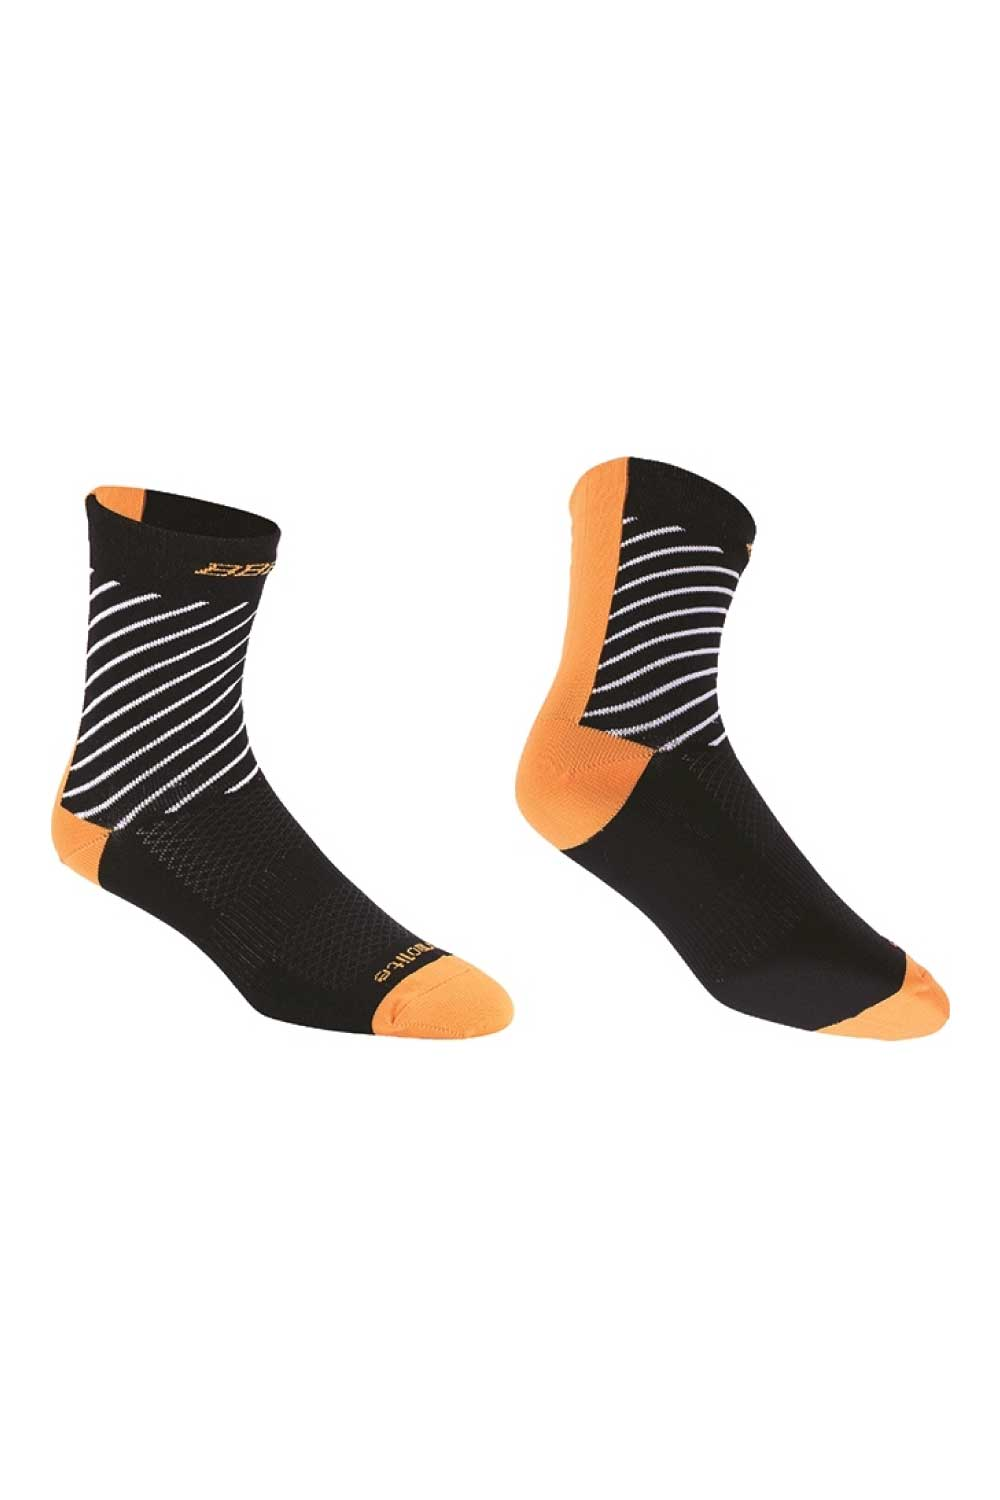 BBB Thermofeet Cycling Socks